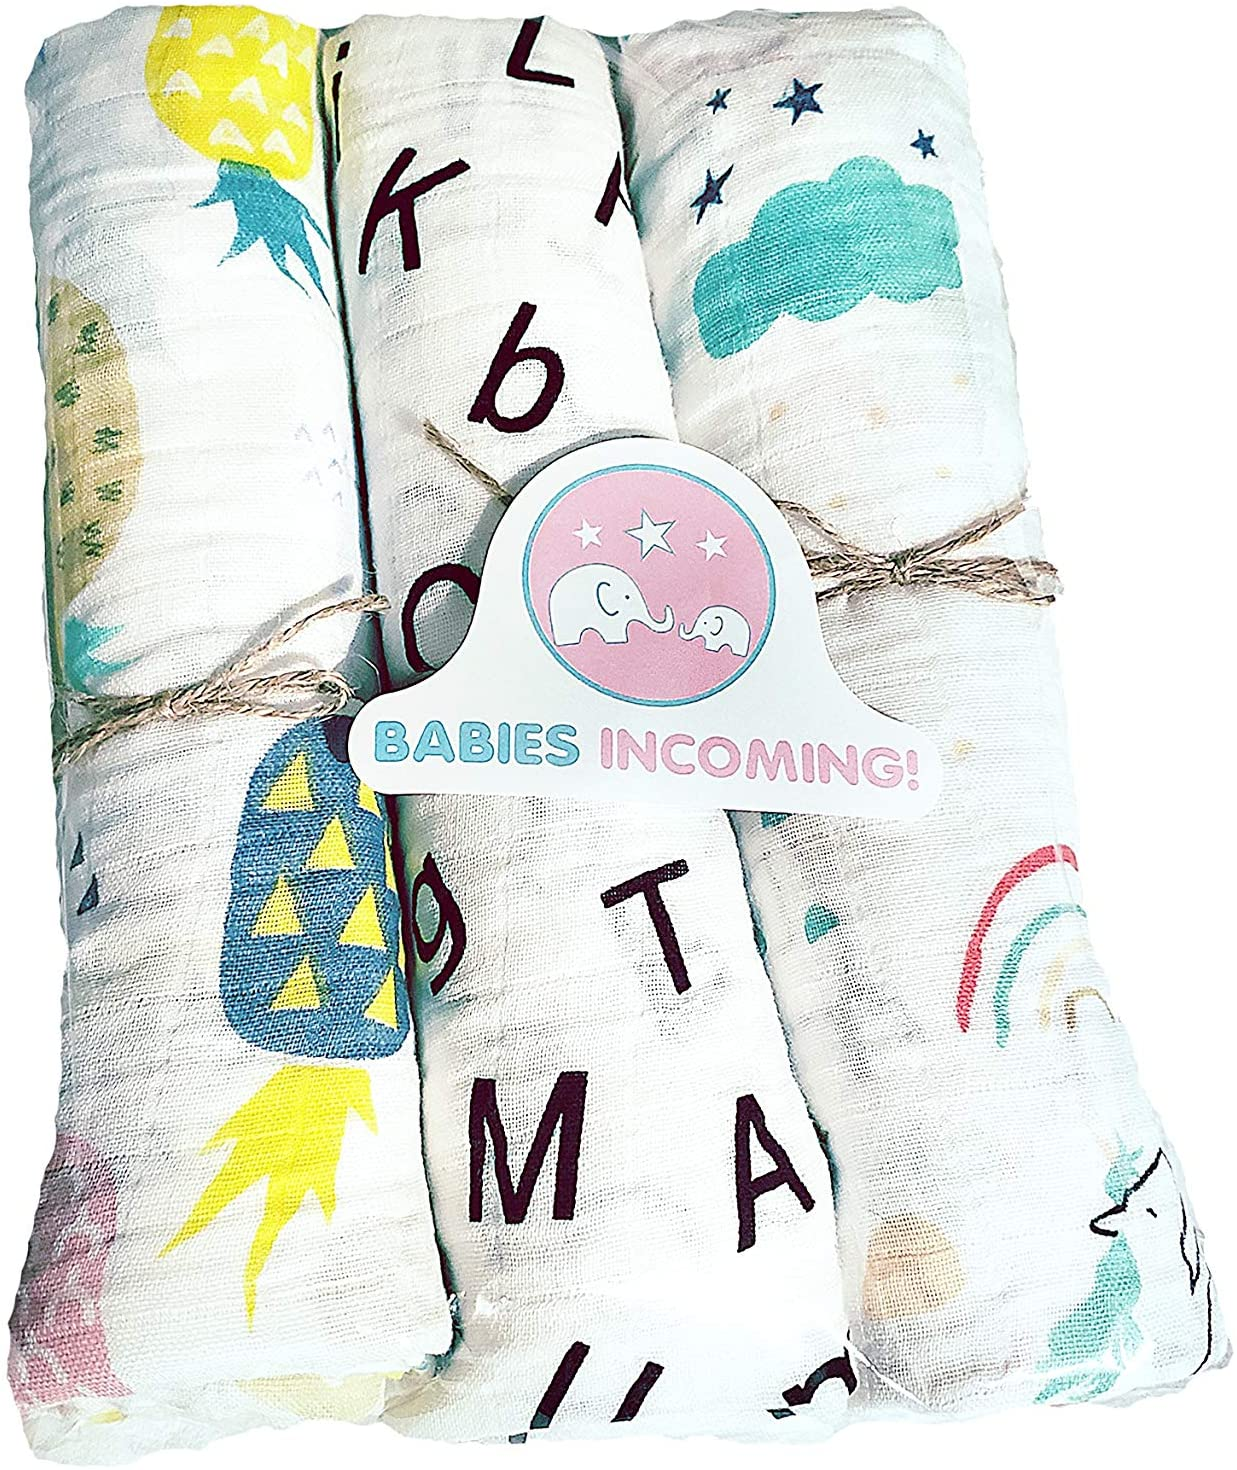 Babies Incoming! Soft Swaddle Blanket 3-Pack  100% Cotton Muslin Baby Swaddling Blankets: Cute